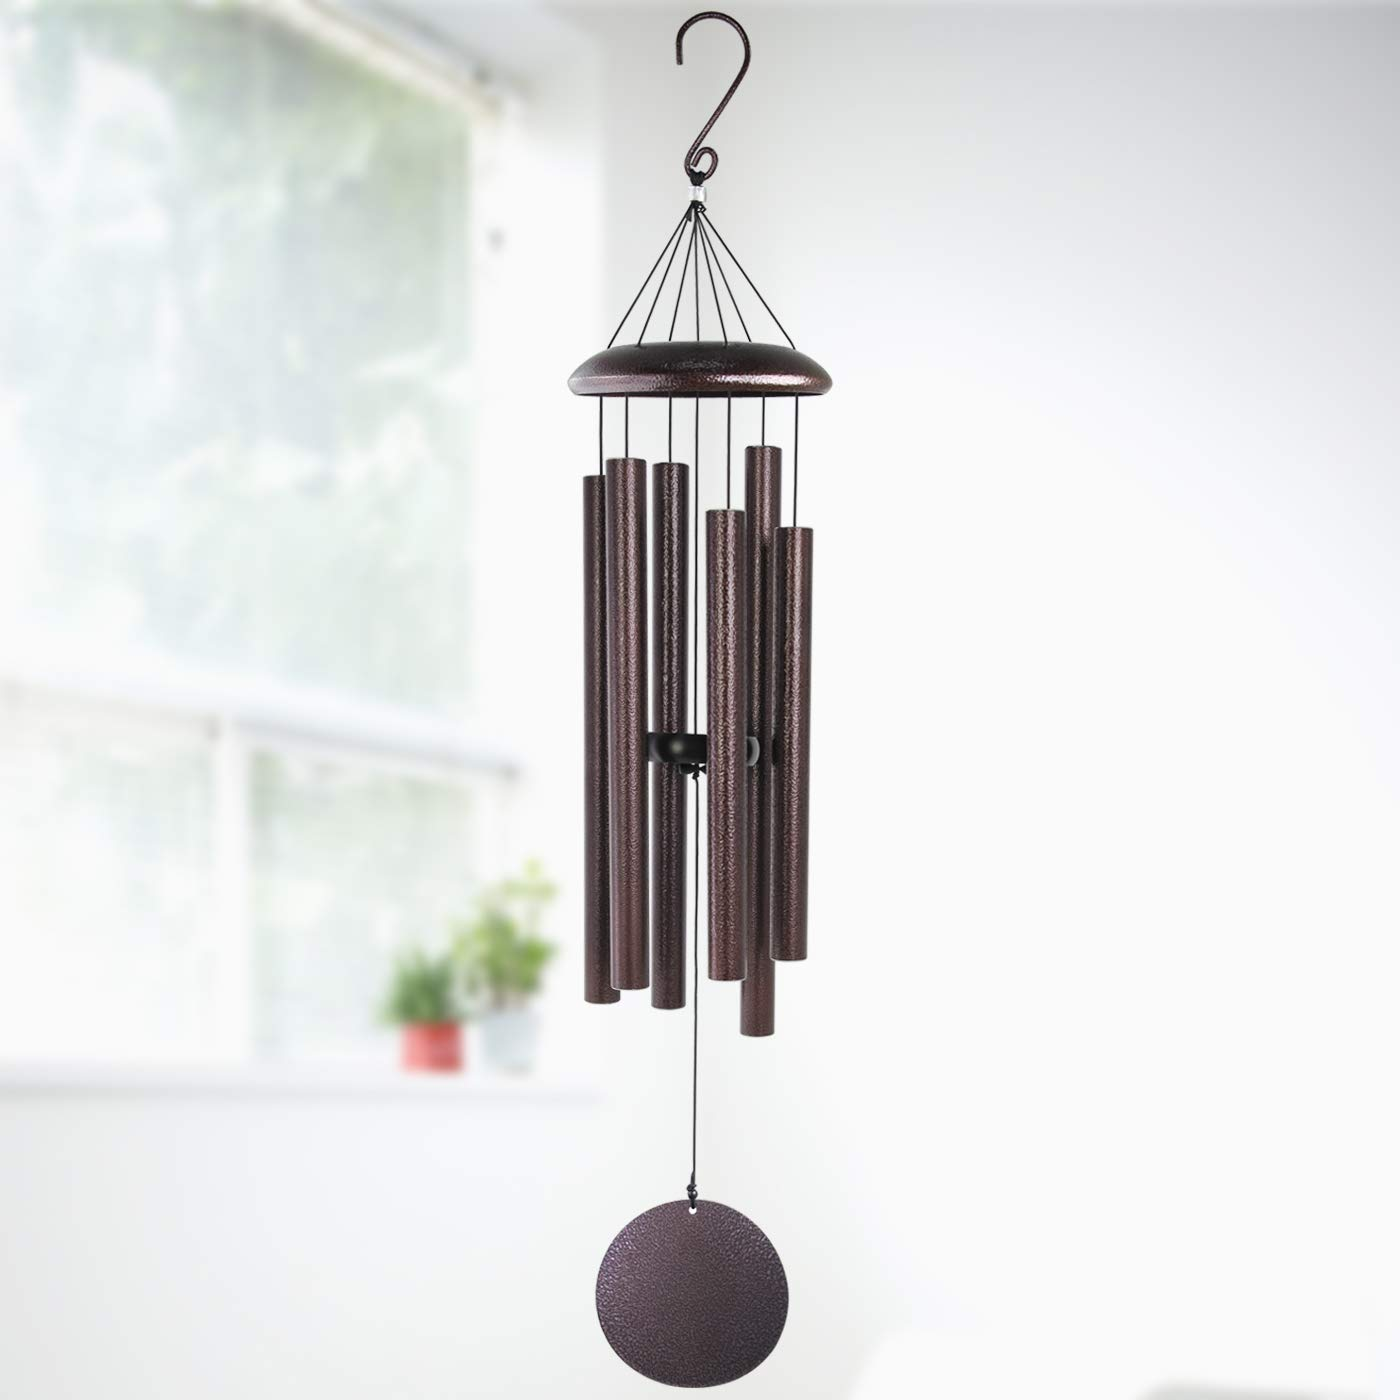 Large Wind Chimes Outdoor Deep Tone,Sympathy Wind Chimes Amazing Grace Outdoor with 6 Metal Tuned Tubes,Memorial Wind Chimes Personalized for Garden Balcony Patio and Home Decor,Bronze 36''